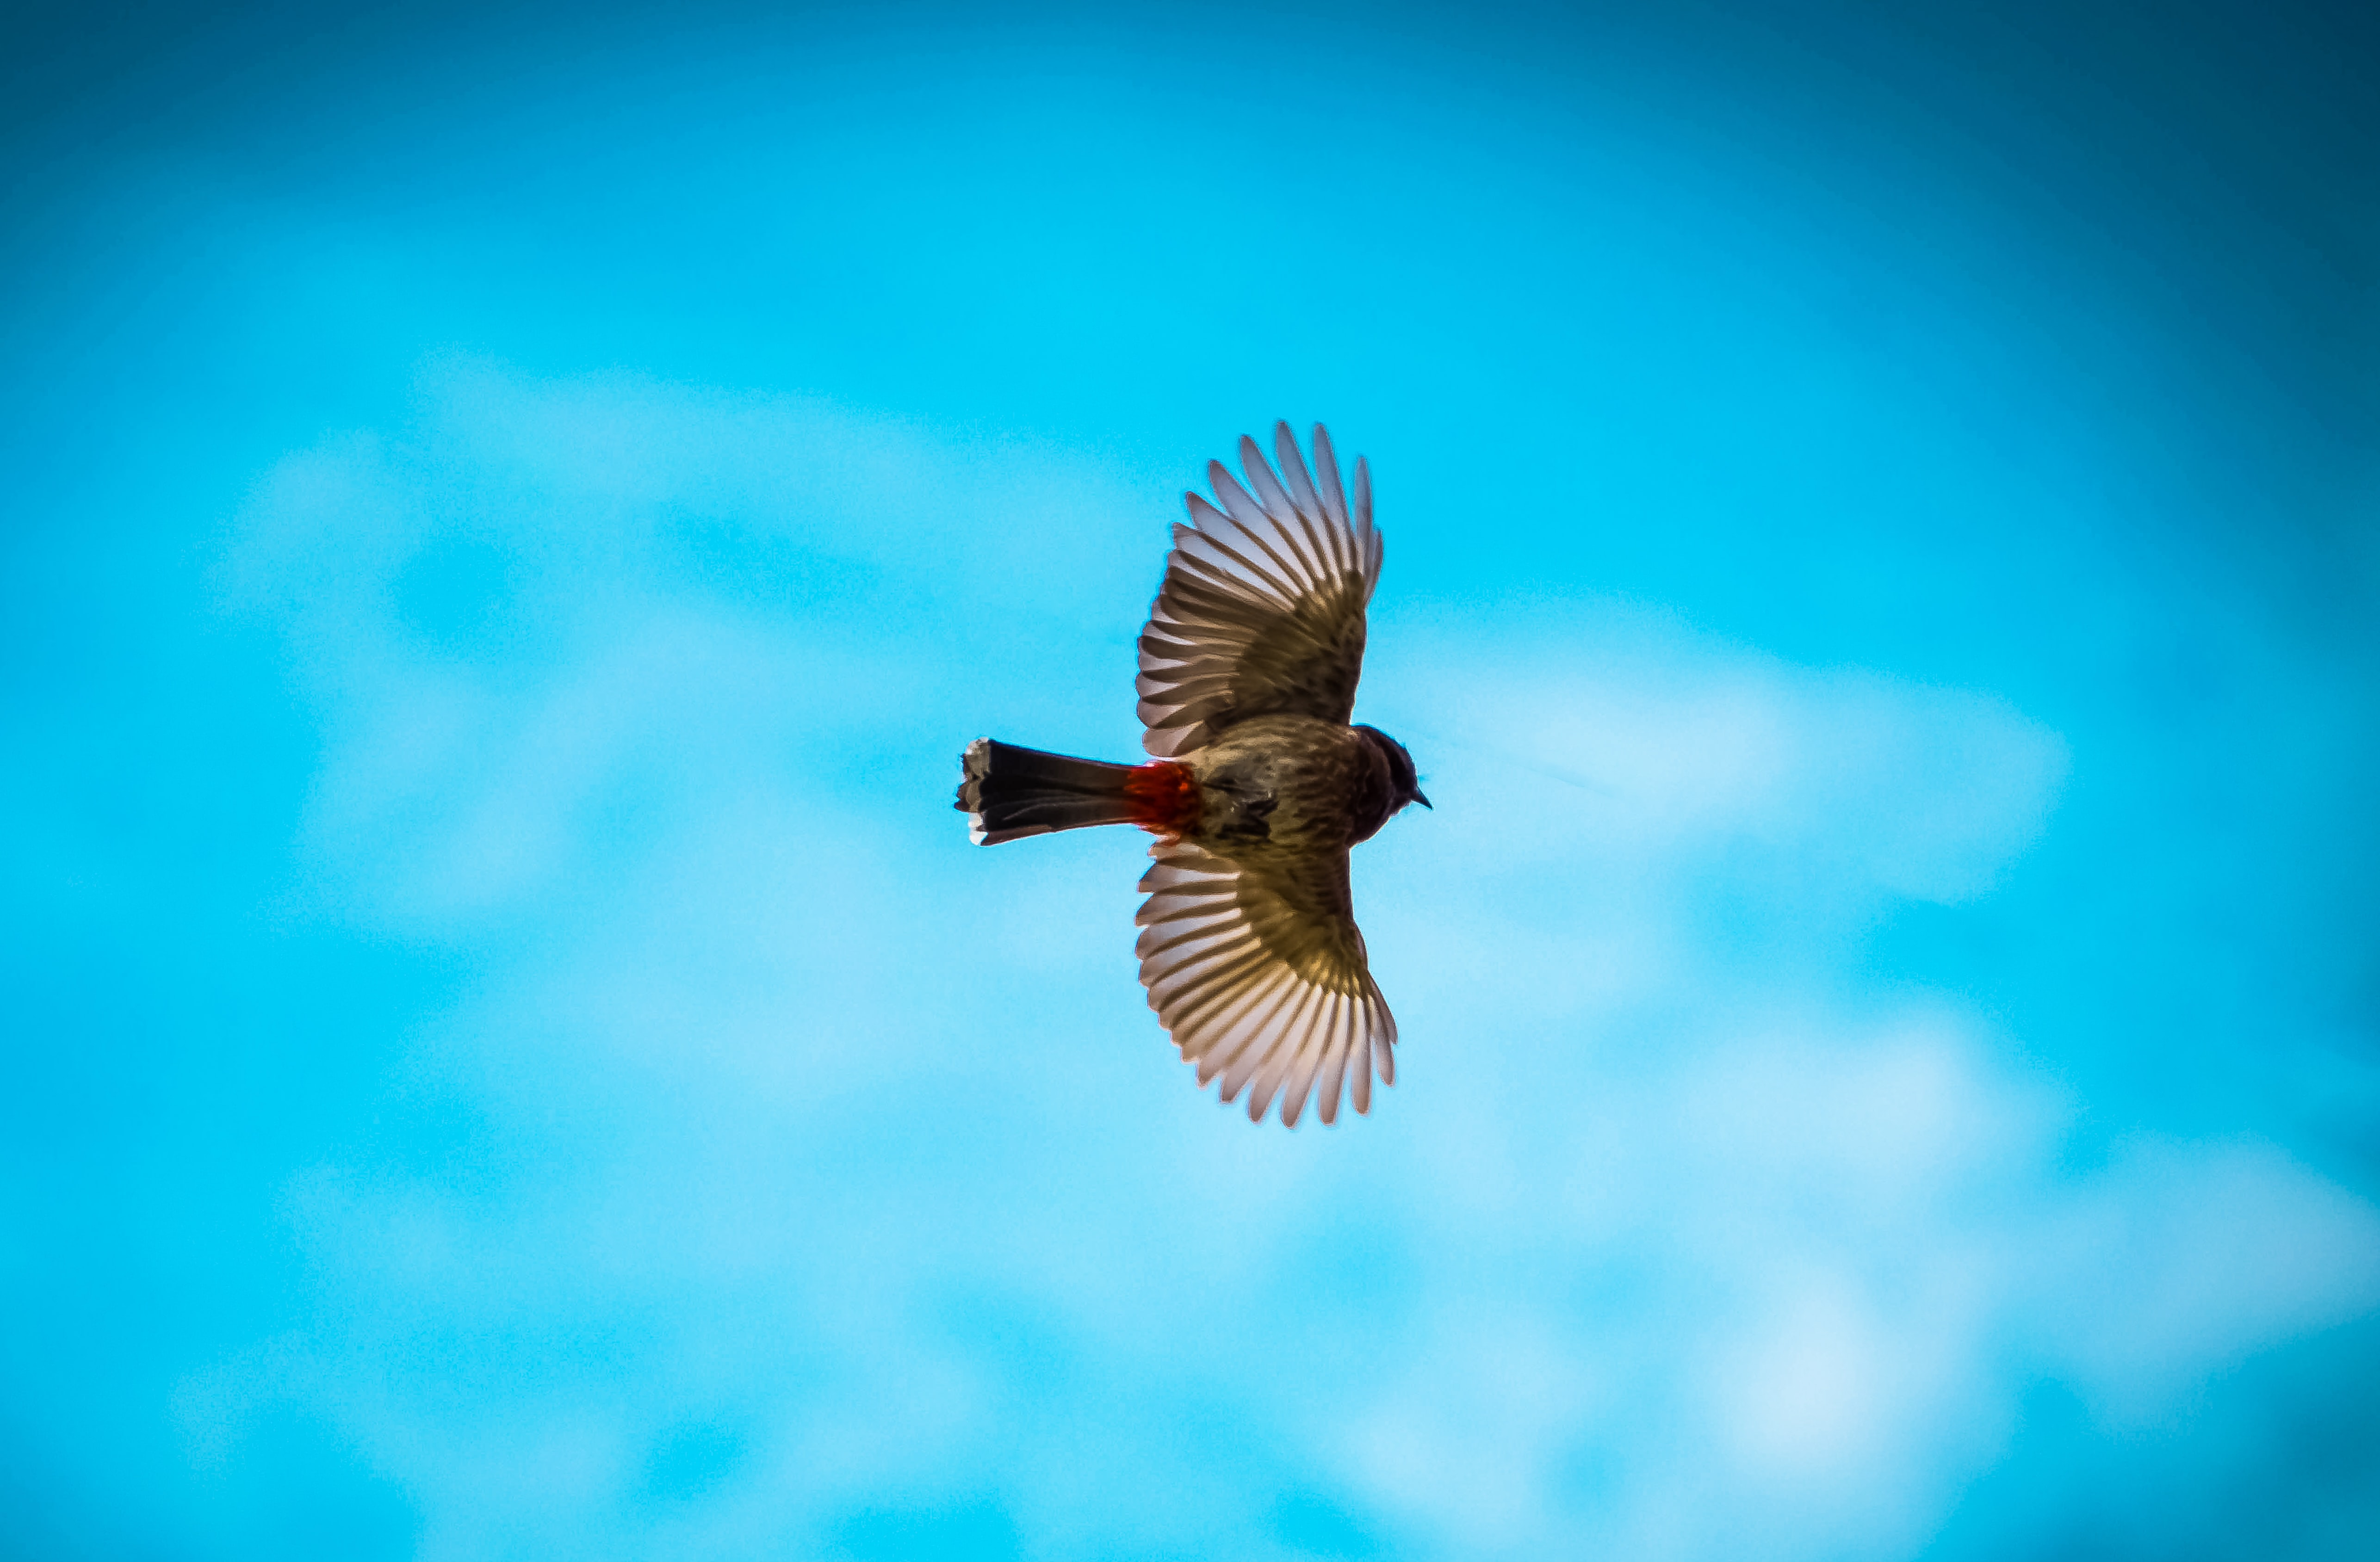 selective focus photography of bird flying